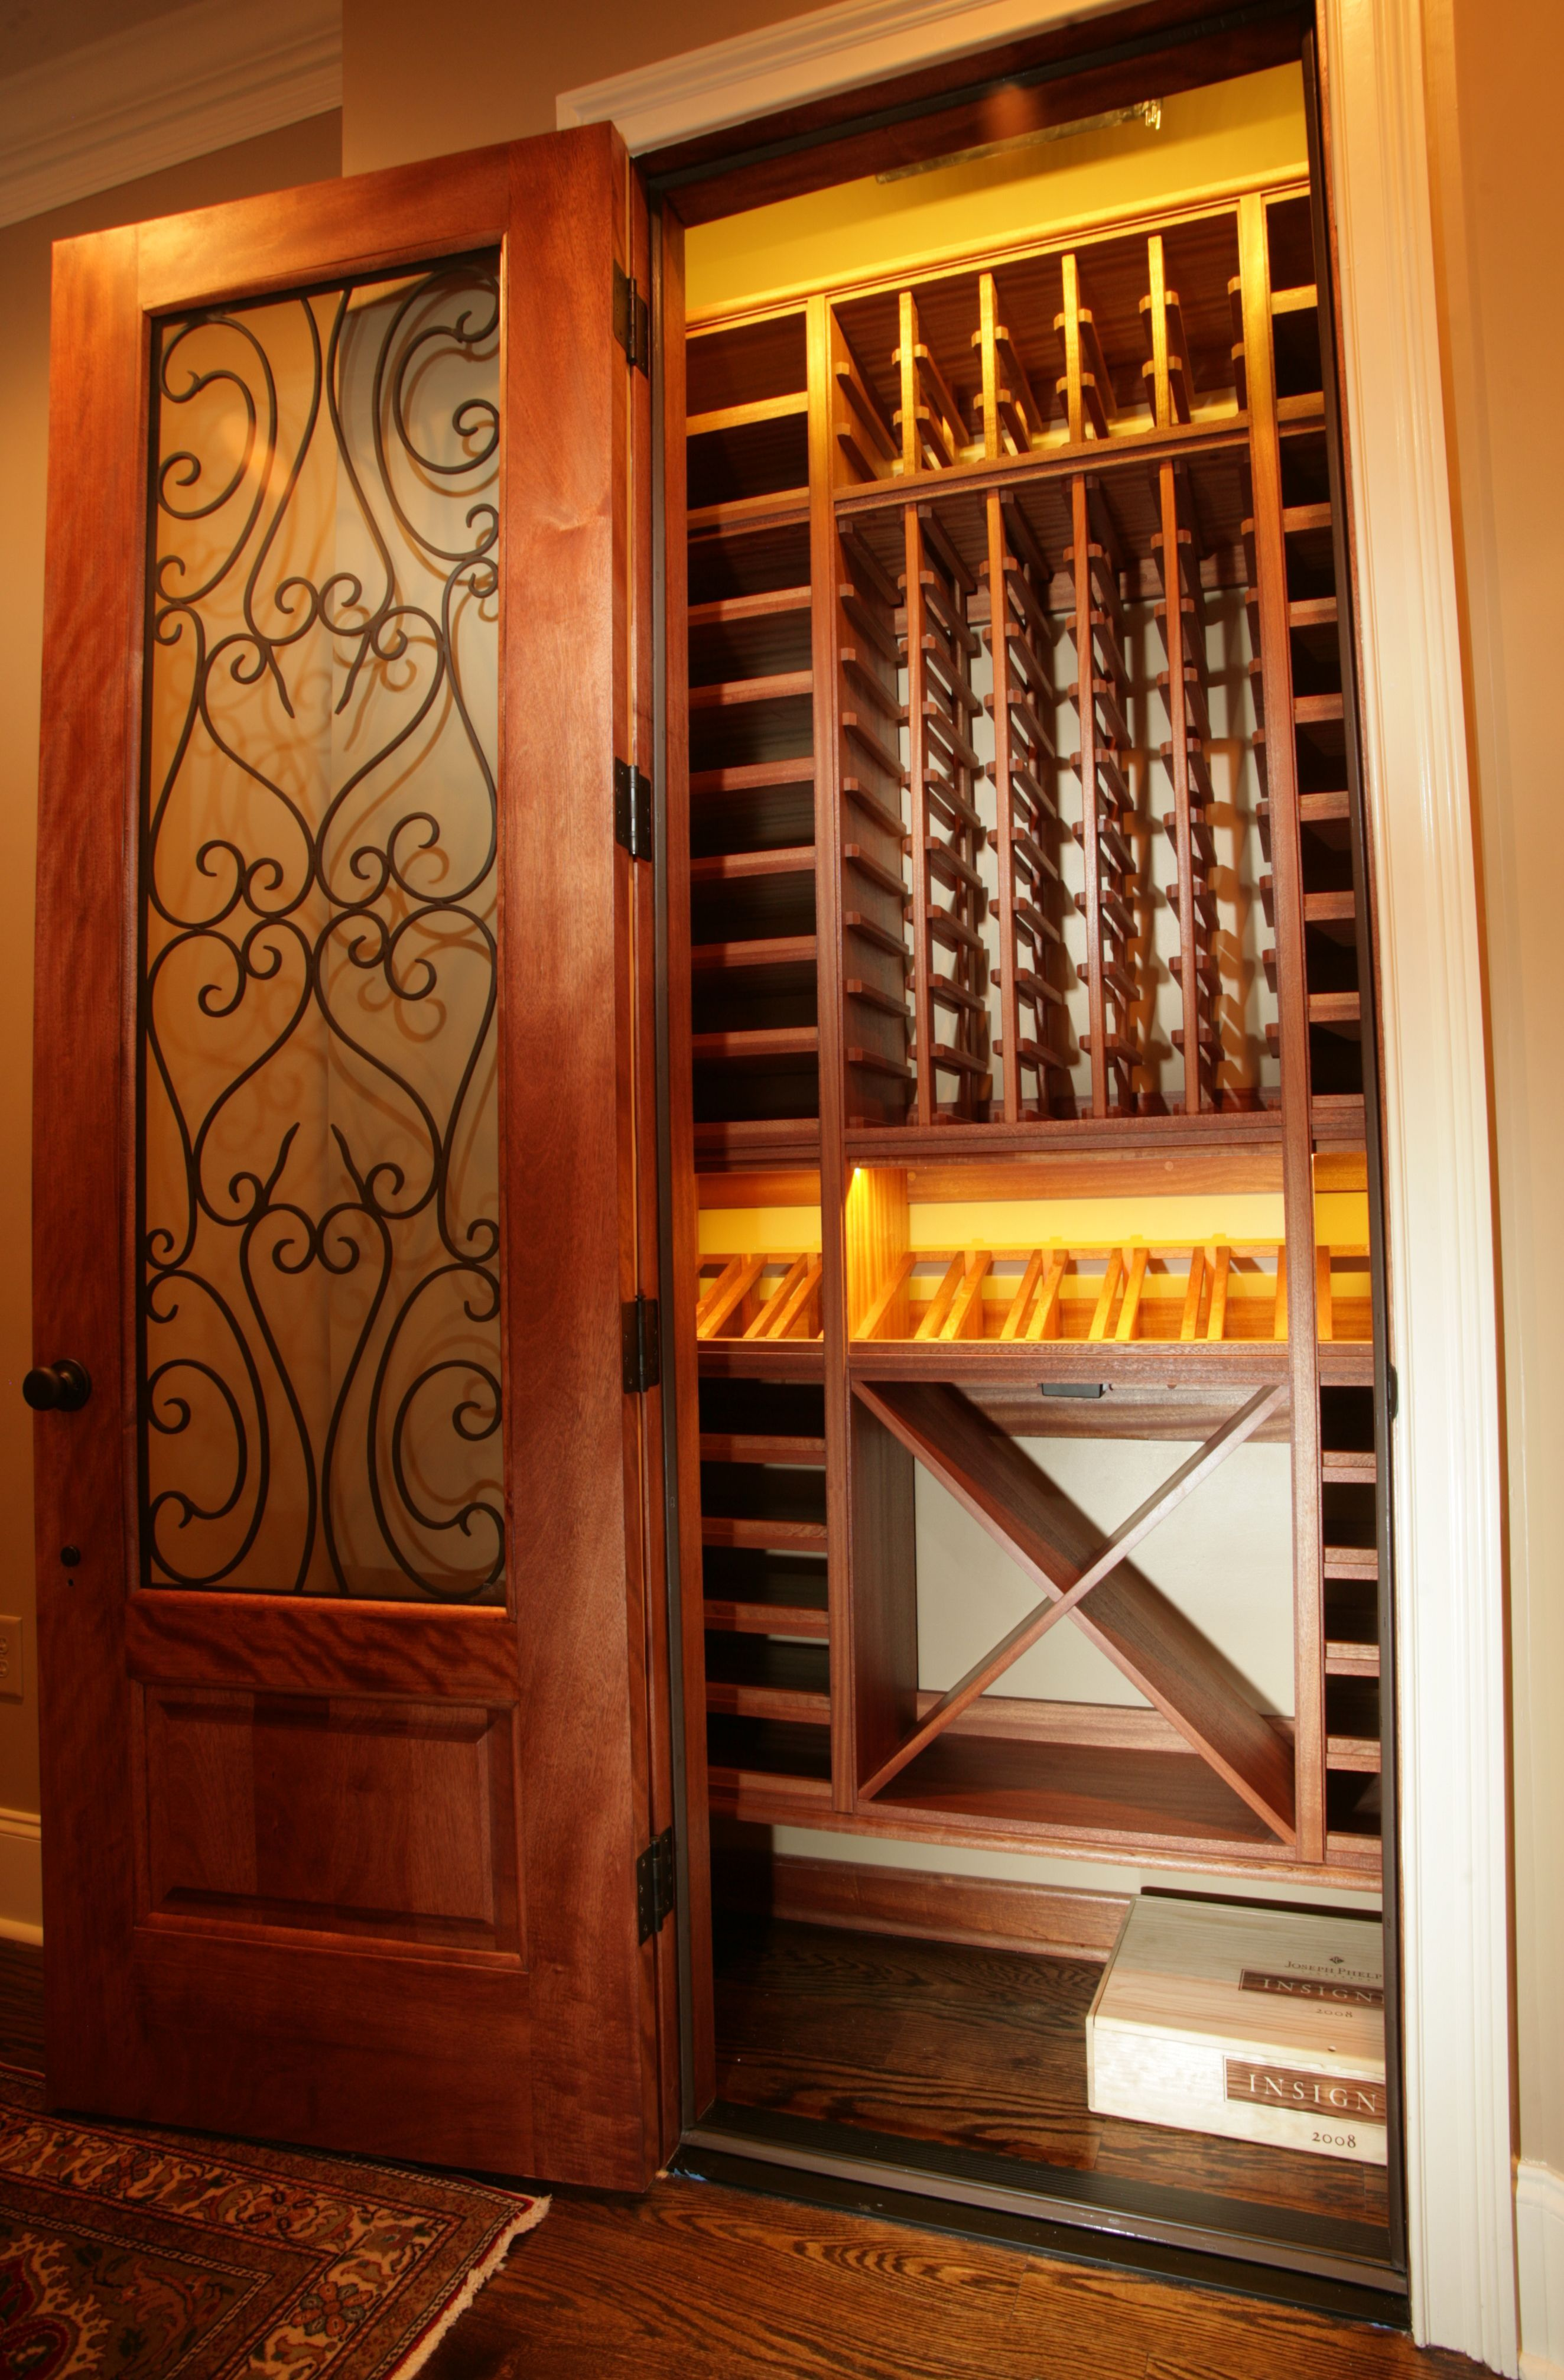 Wine Wall Display Racks Select Series By Kessick Wine Cellars Is A Wall Mounted